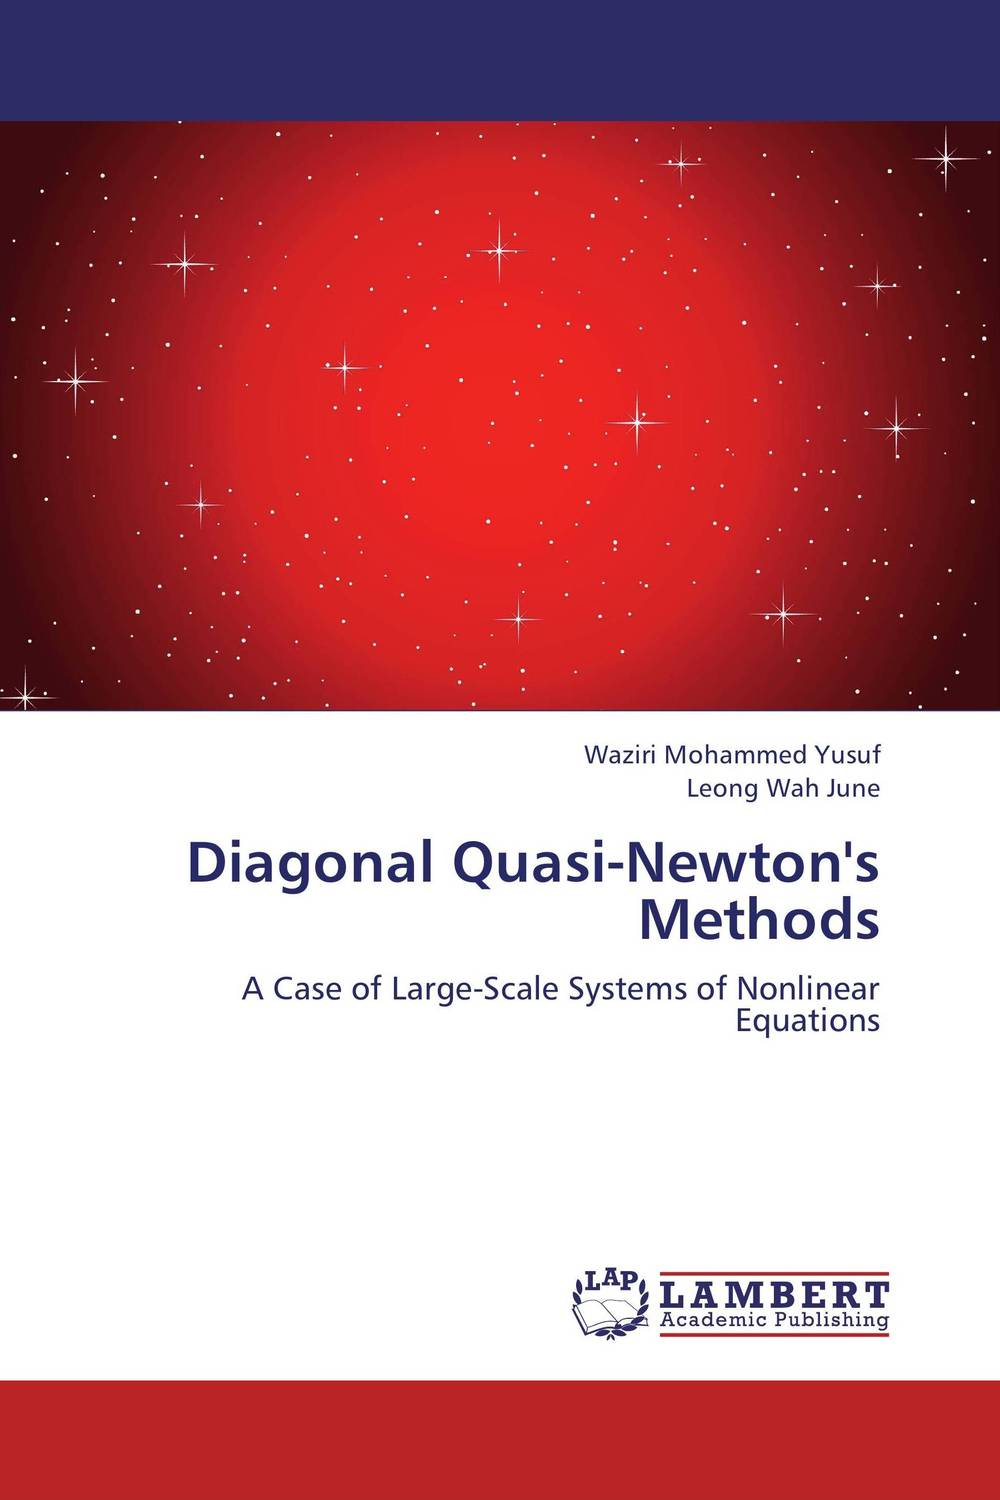 Diagonal Quasi-Newton's Methods belousov a security features of banknotes and other documents methods of authentication manual денежные билеты бланки ценных бумаг и документов